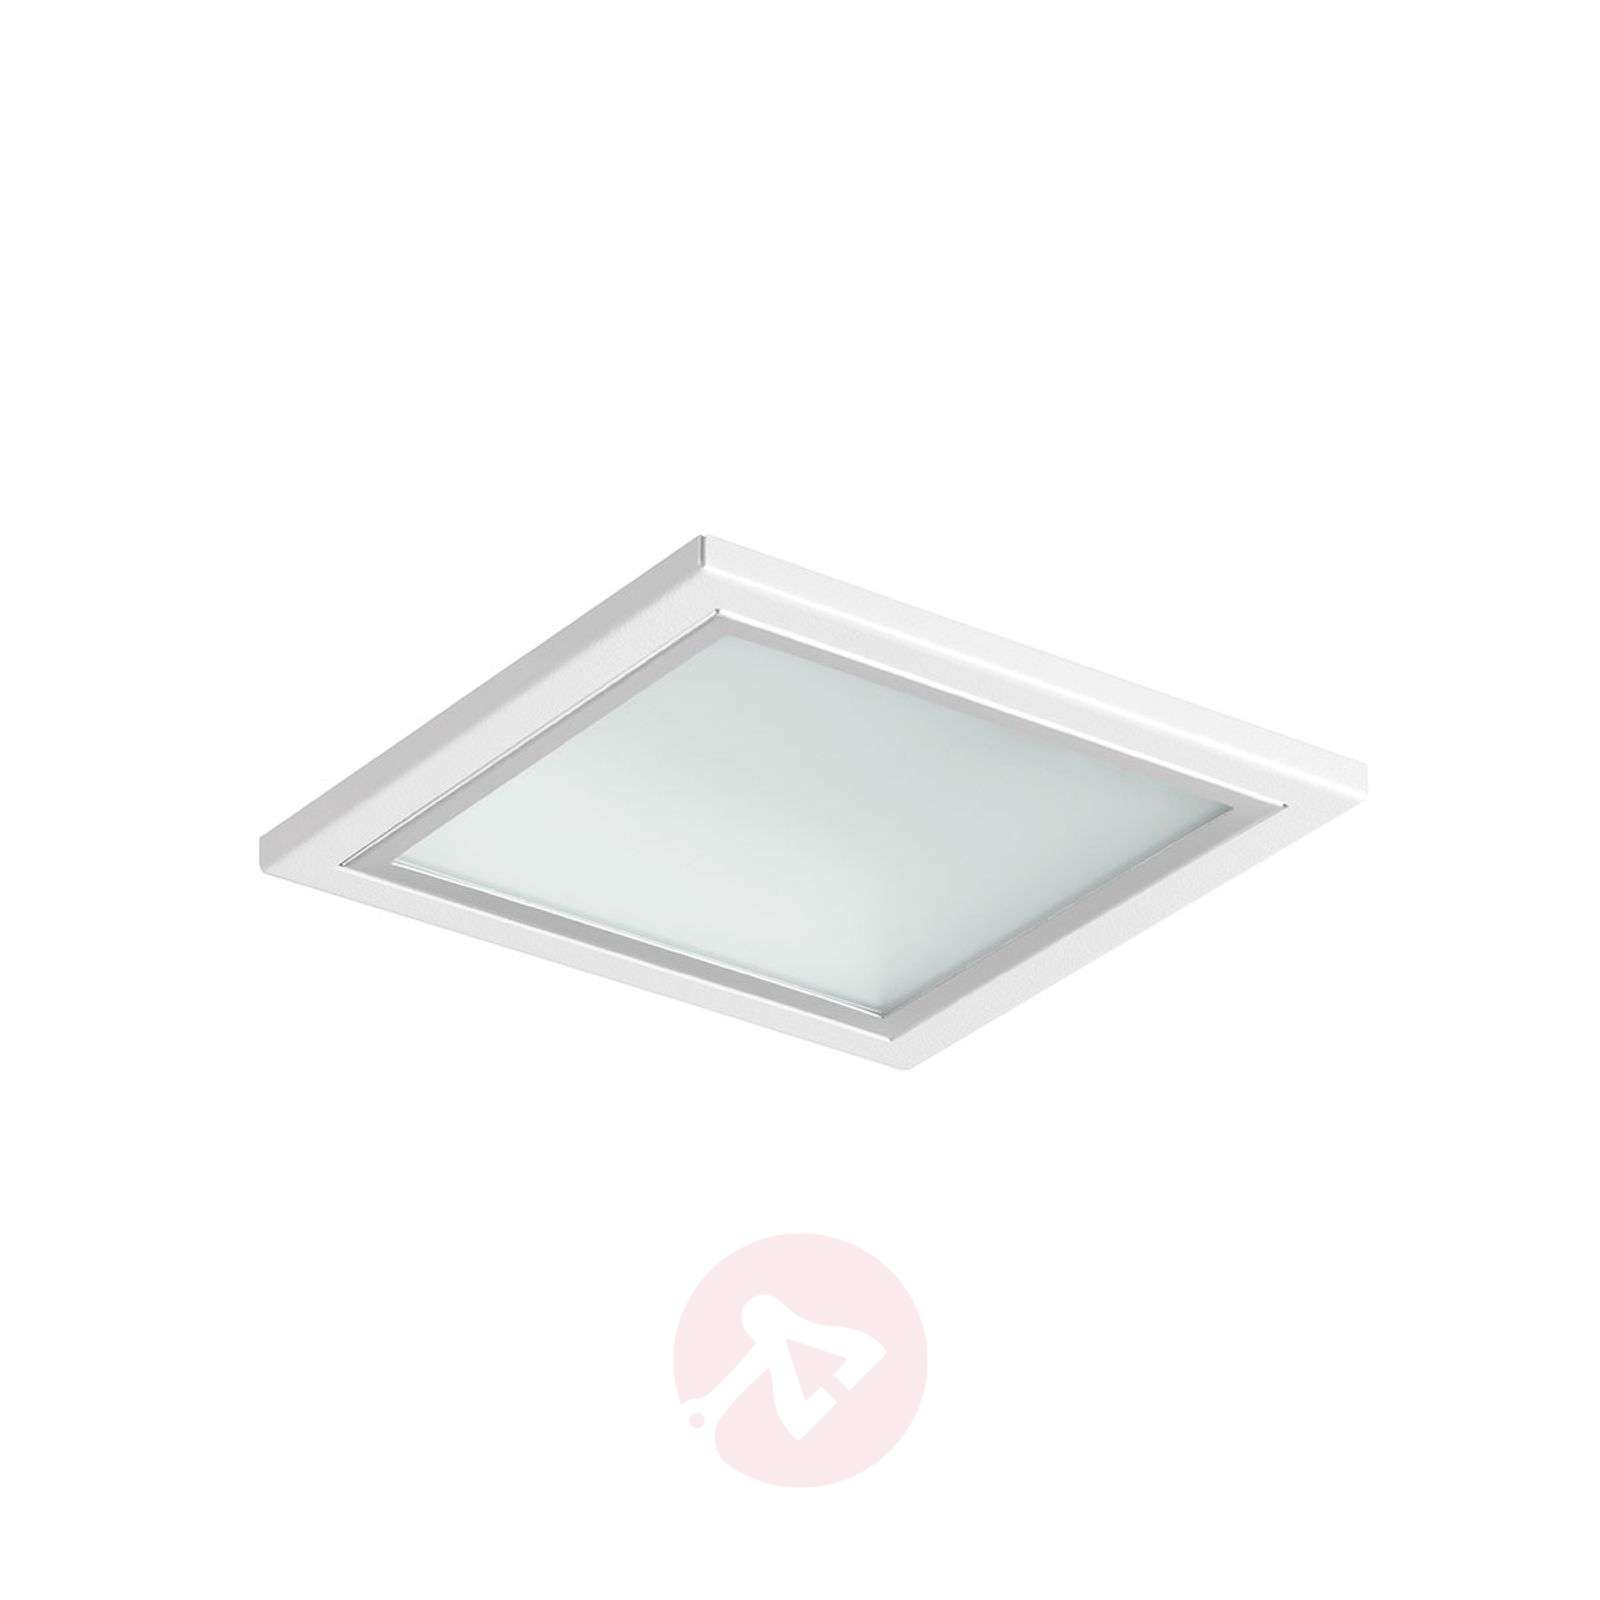 Downlight LED Noviel S PRO, 20W, 79degree-7252147X-01